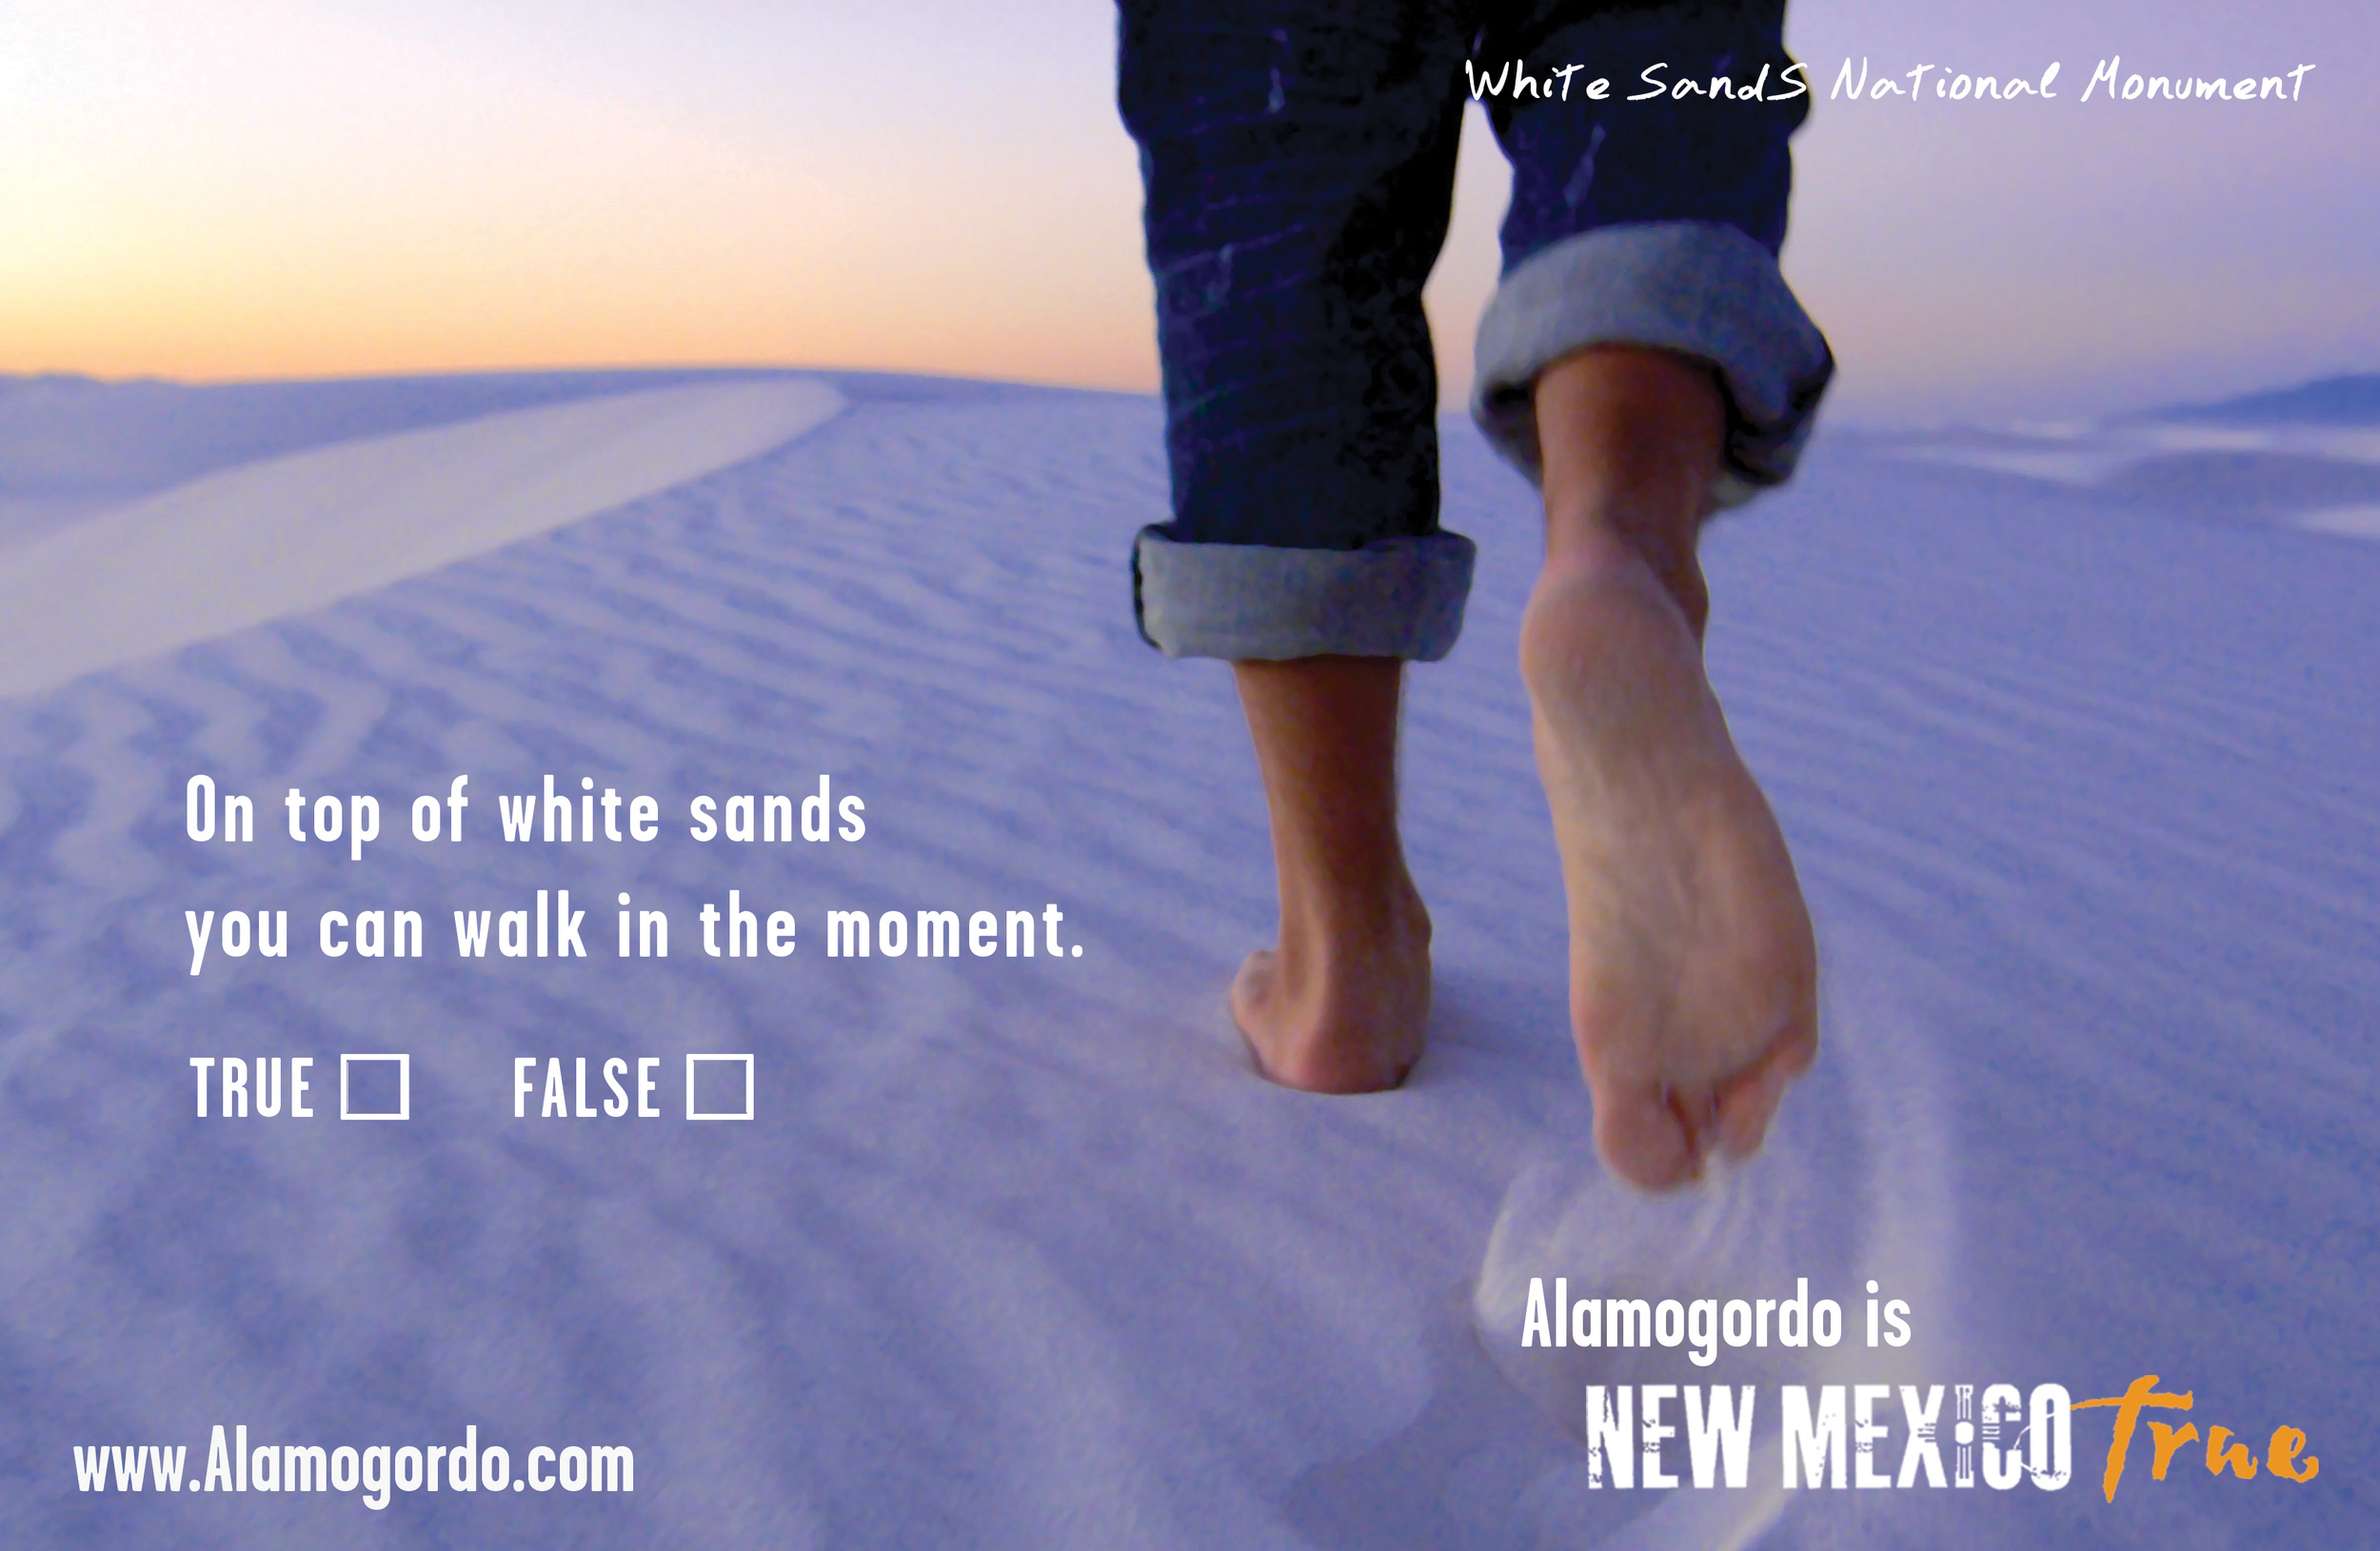 White Sands National Monument Ad